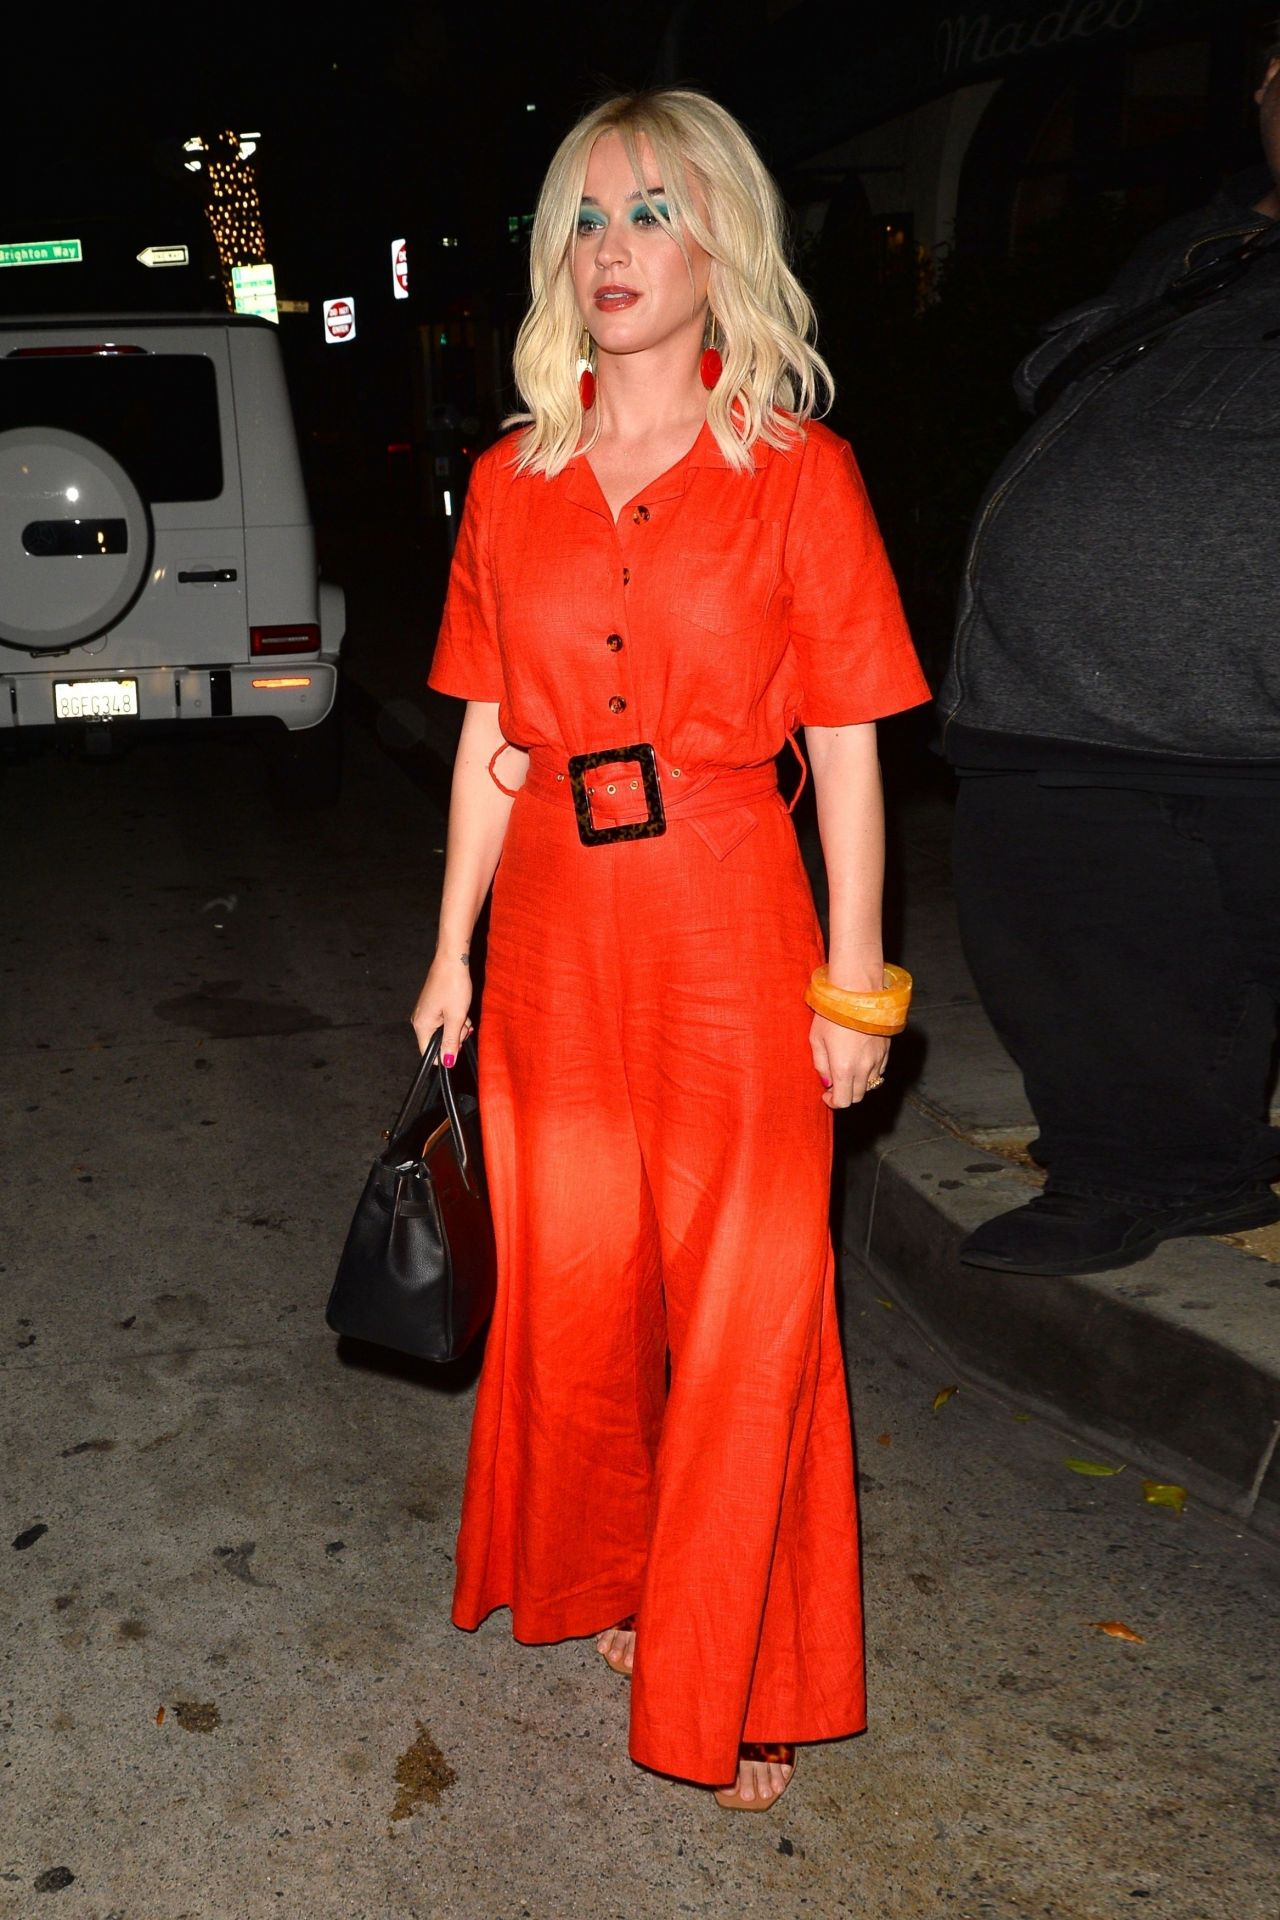 Katy Perry Night Out Style 04 24 2019